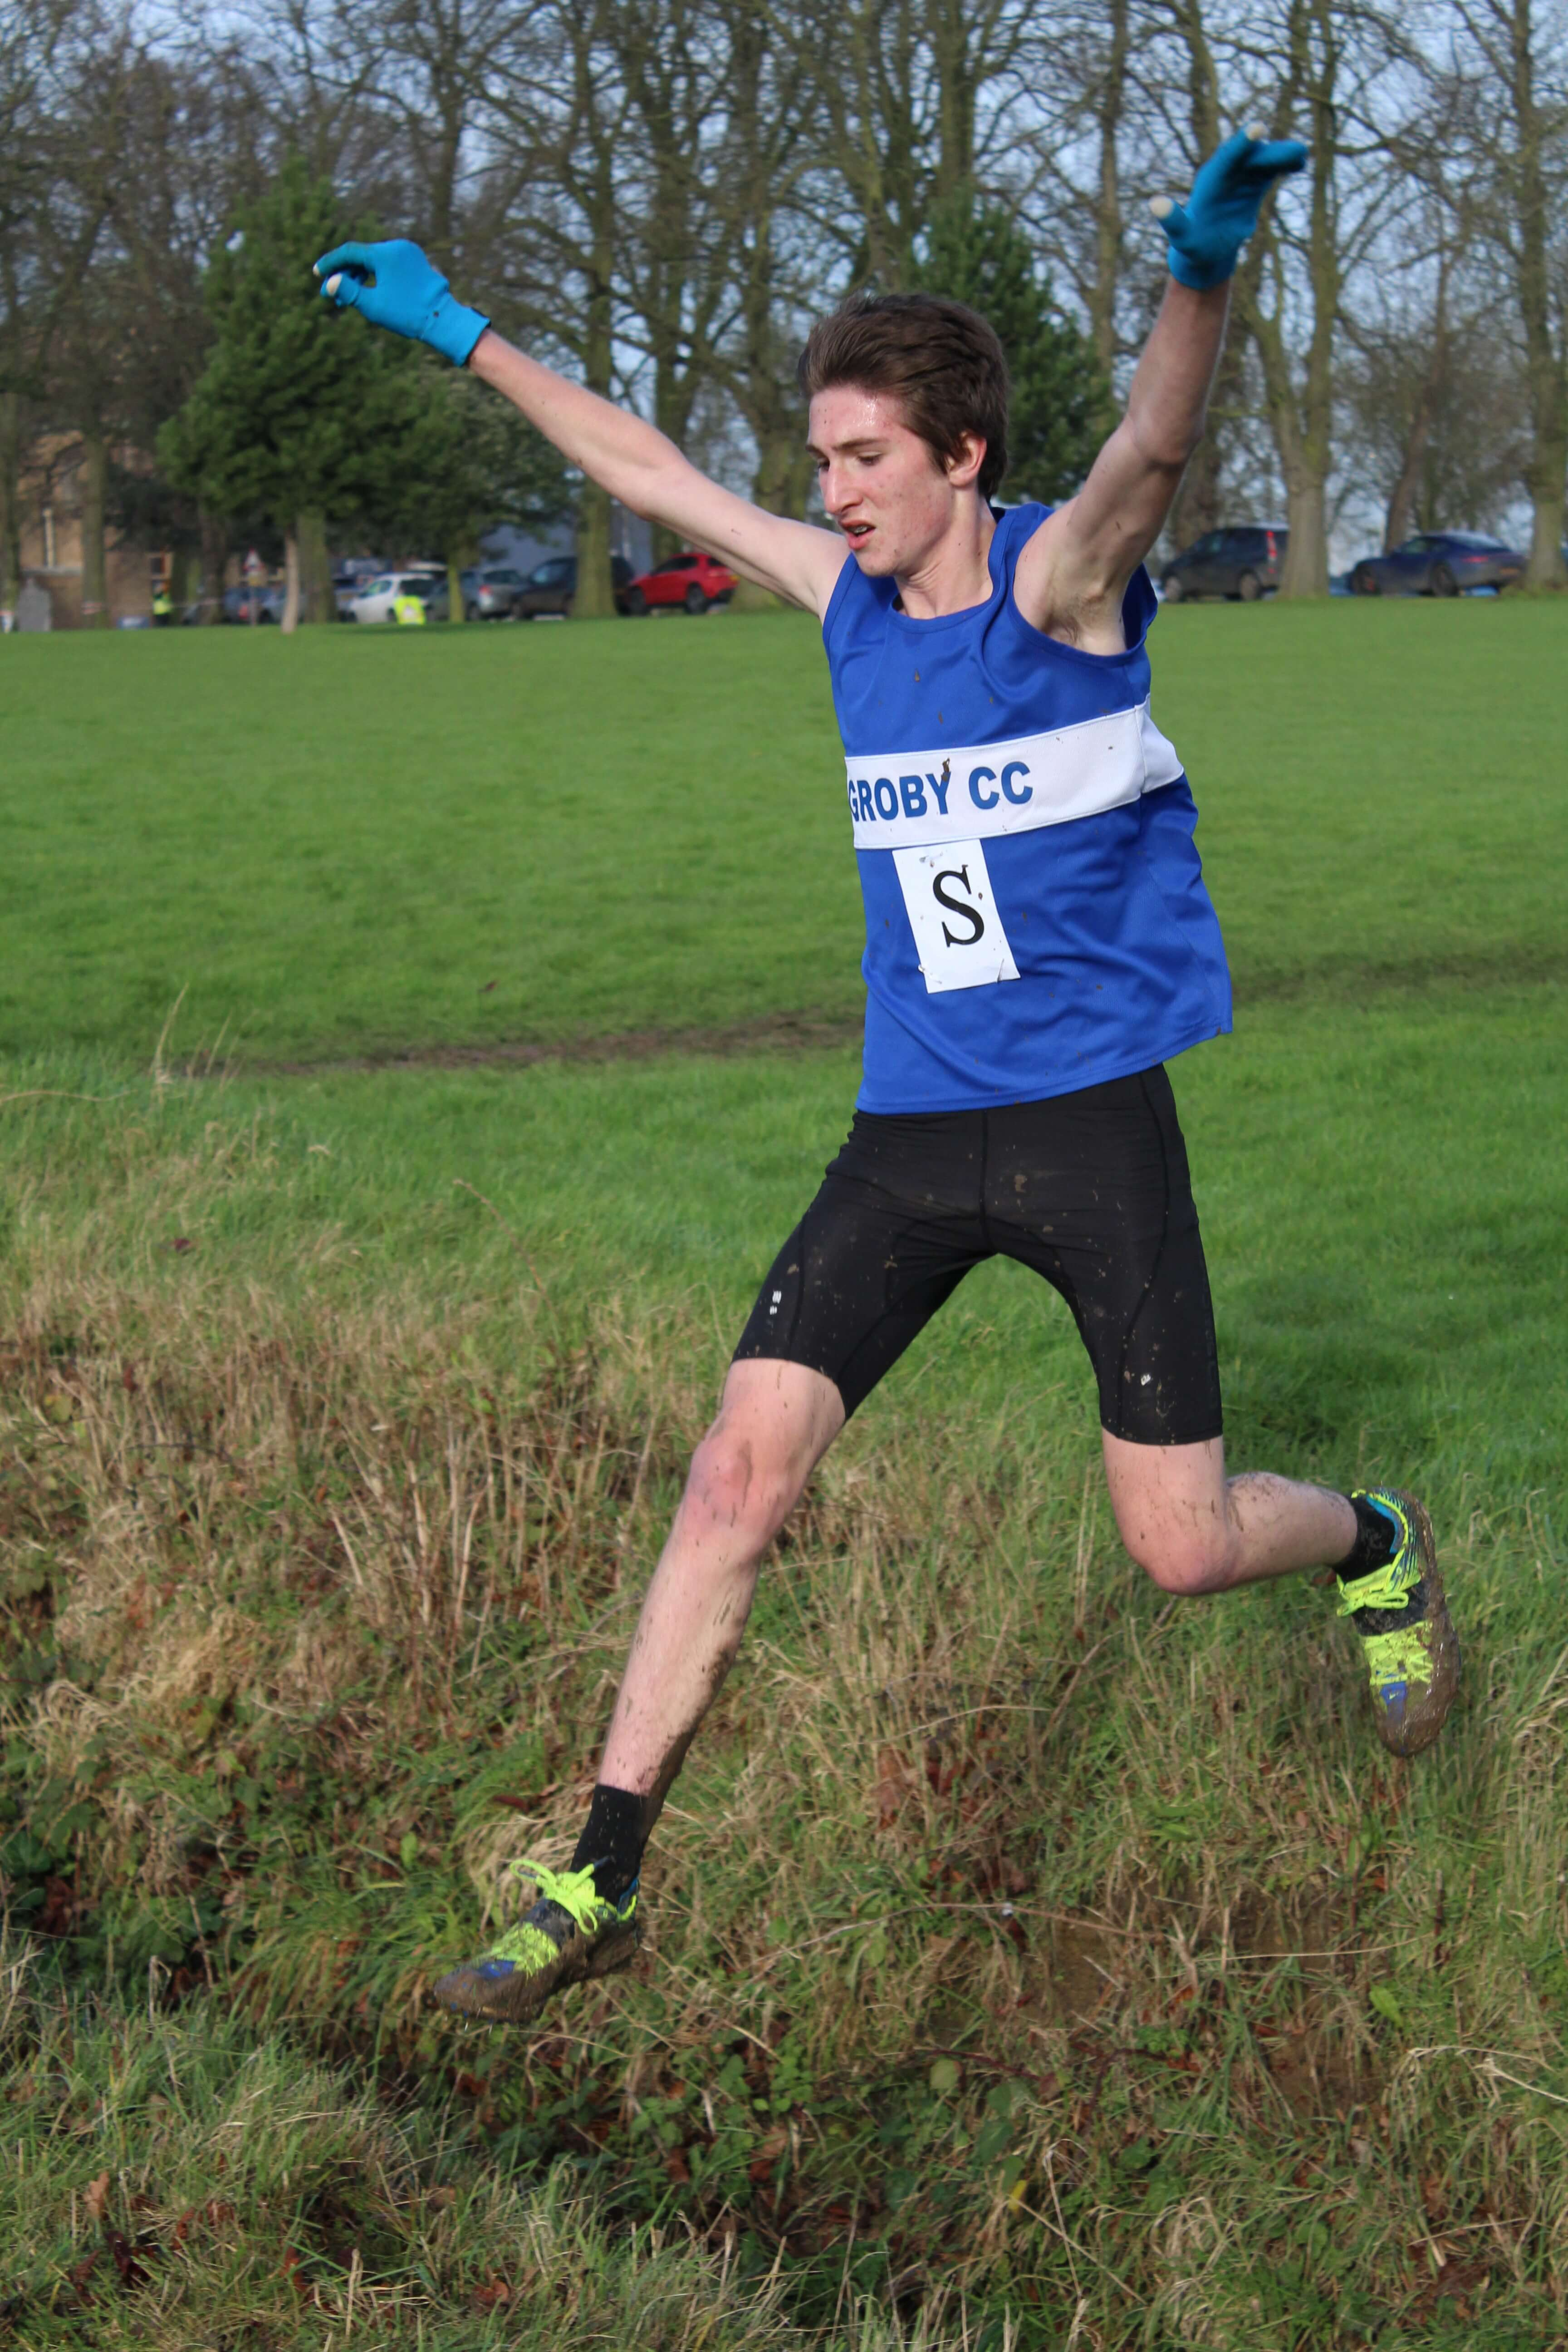 Pascal (Ratcliffe College XC race: January 2016)